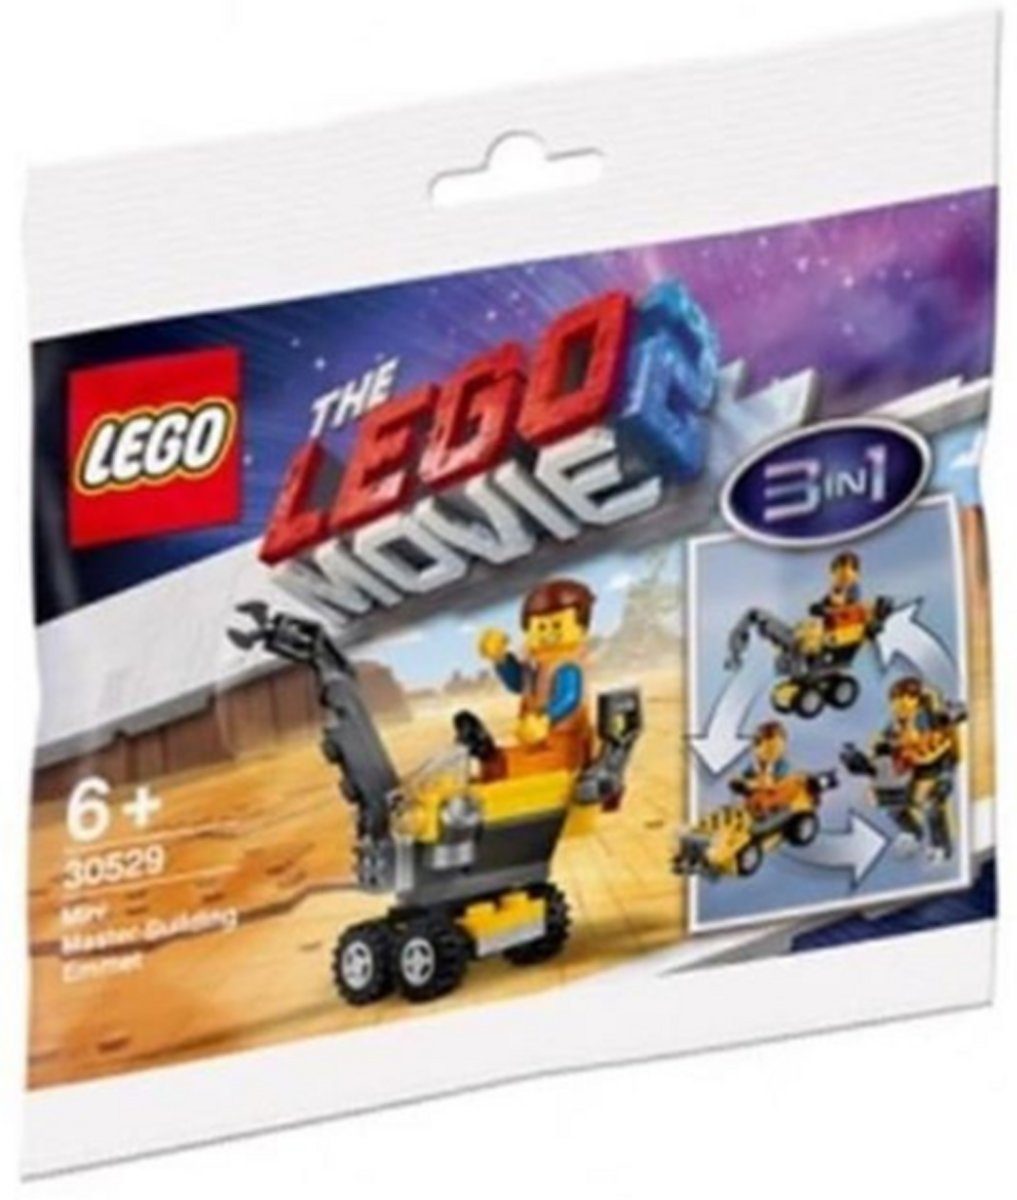 LEGO The Movie 2 Mini Meesterbouwer Emmet (polybag) - 30529